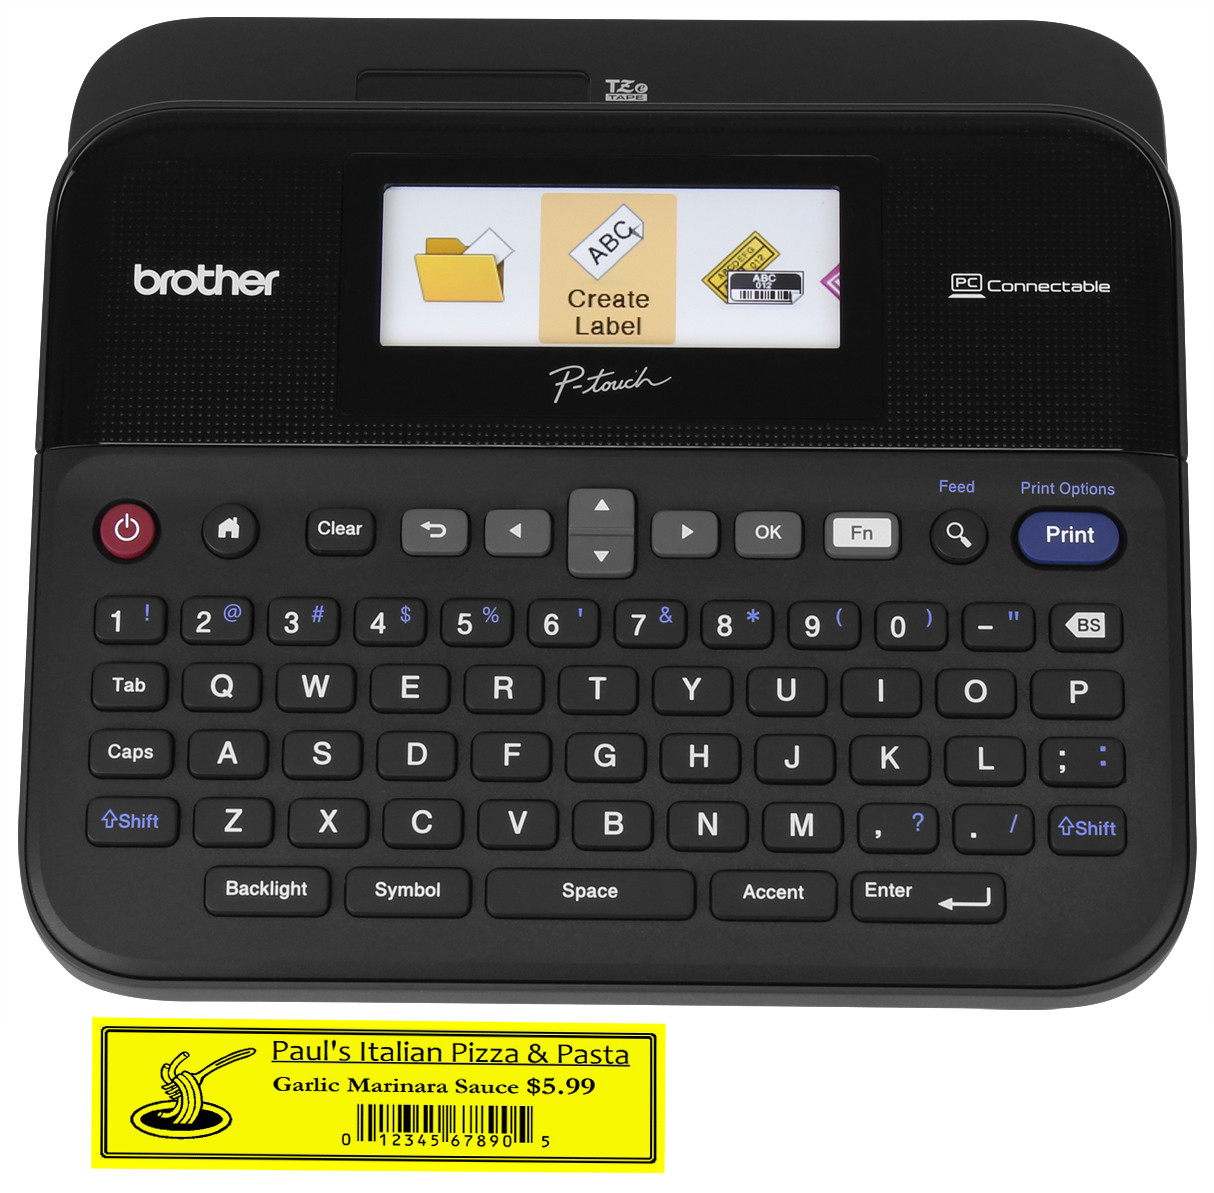 Brother P-touch PT-9600 Manuals